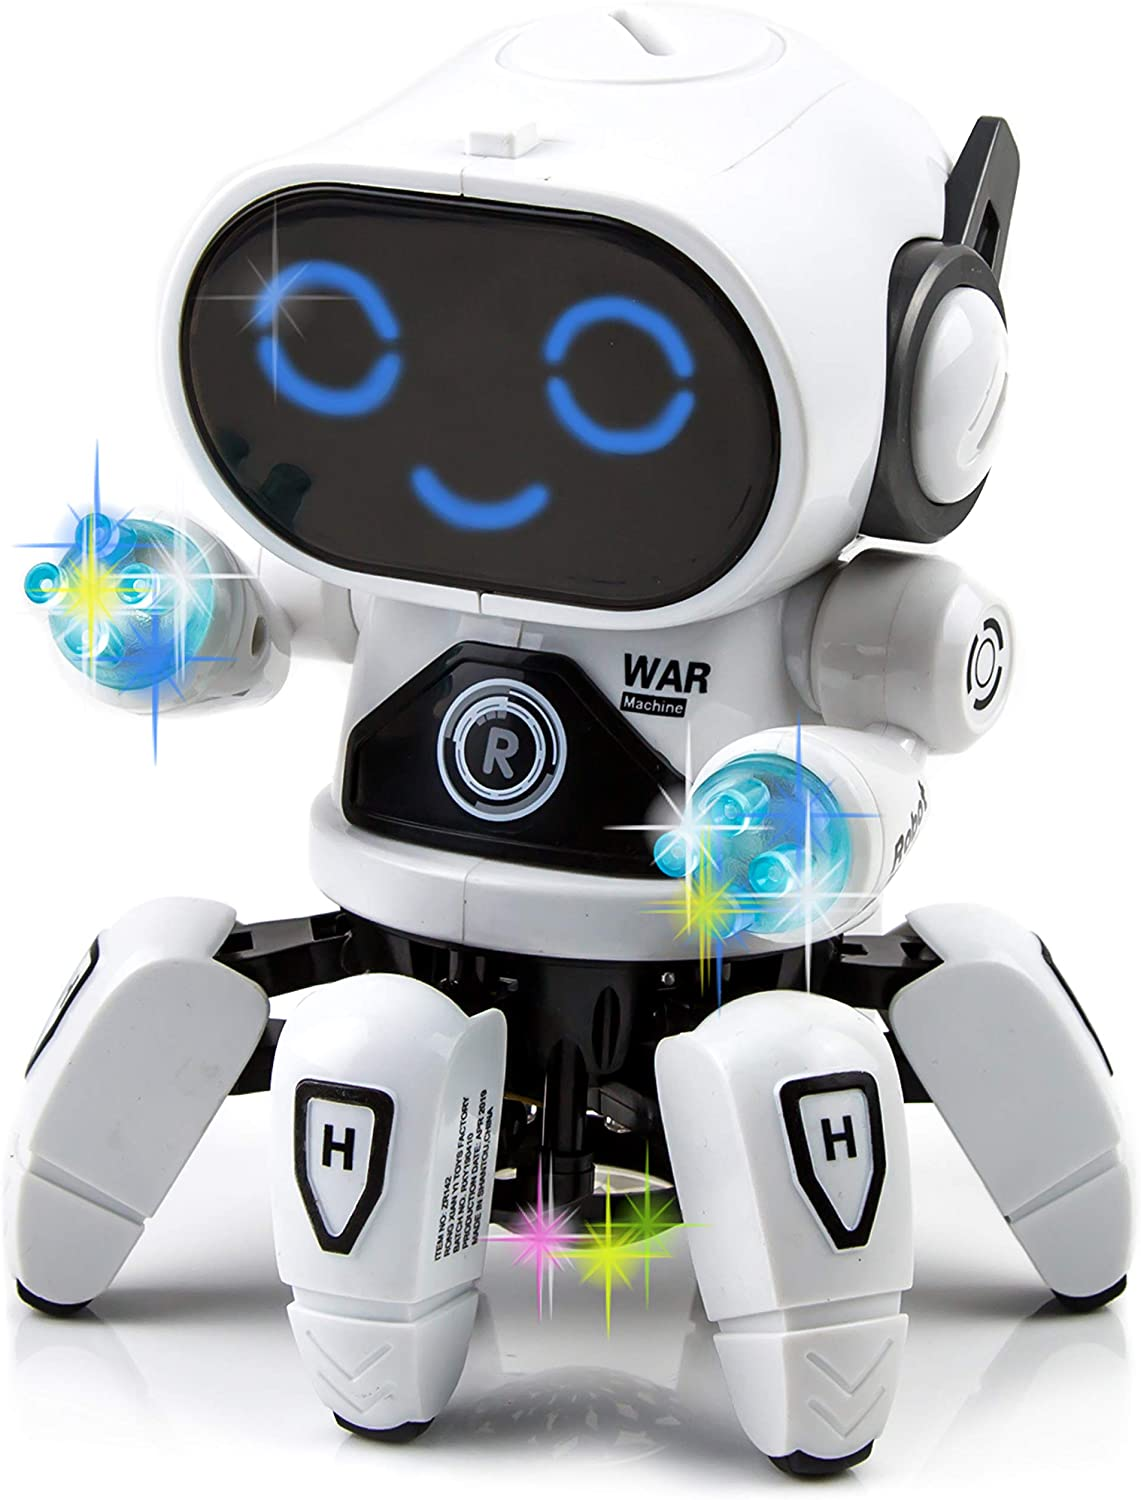 Toytykes Bot Robot Pioneer Equipped with Colorful Lights and Music Can Move Forward and Backward, Turn Left and Right Endless Fun for Kids Materials